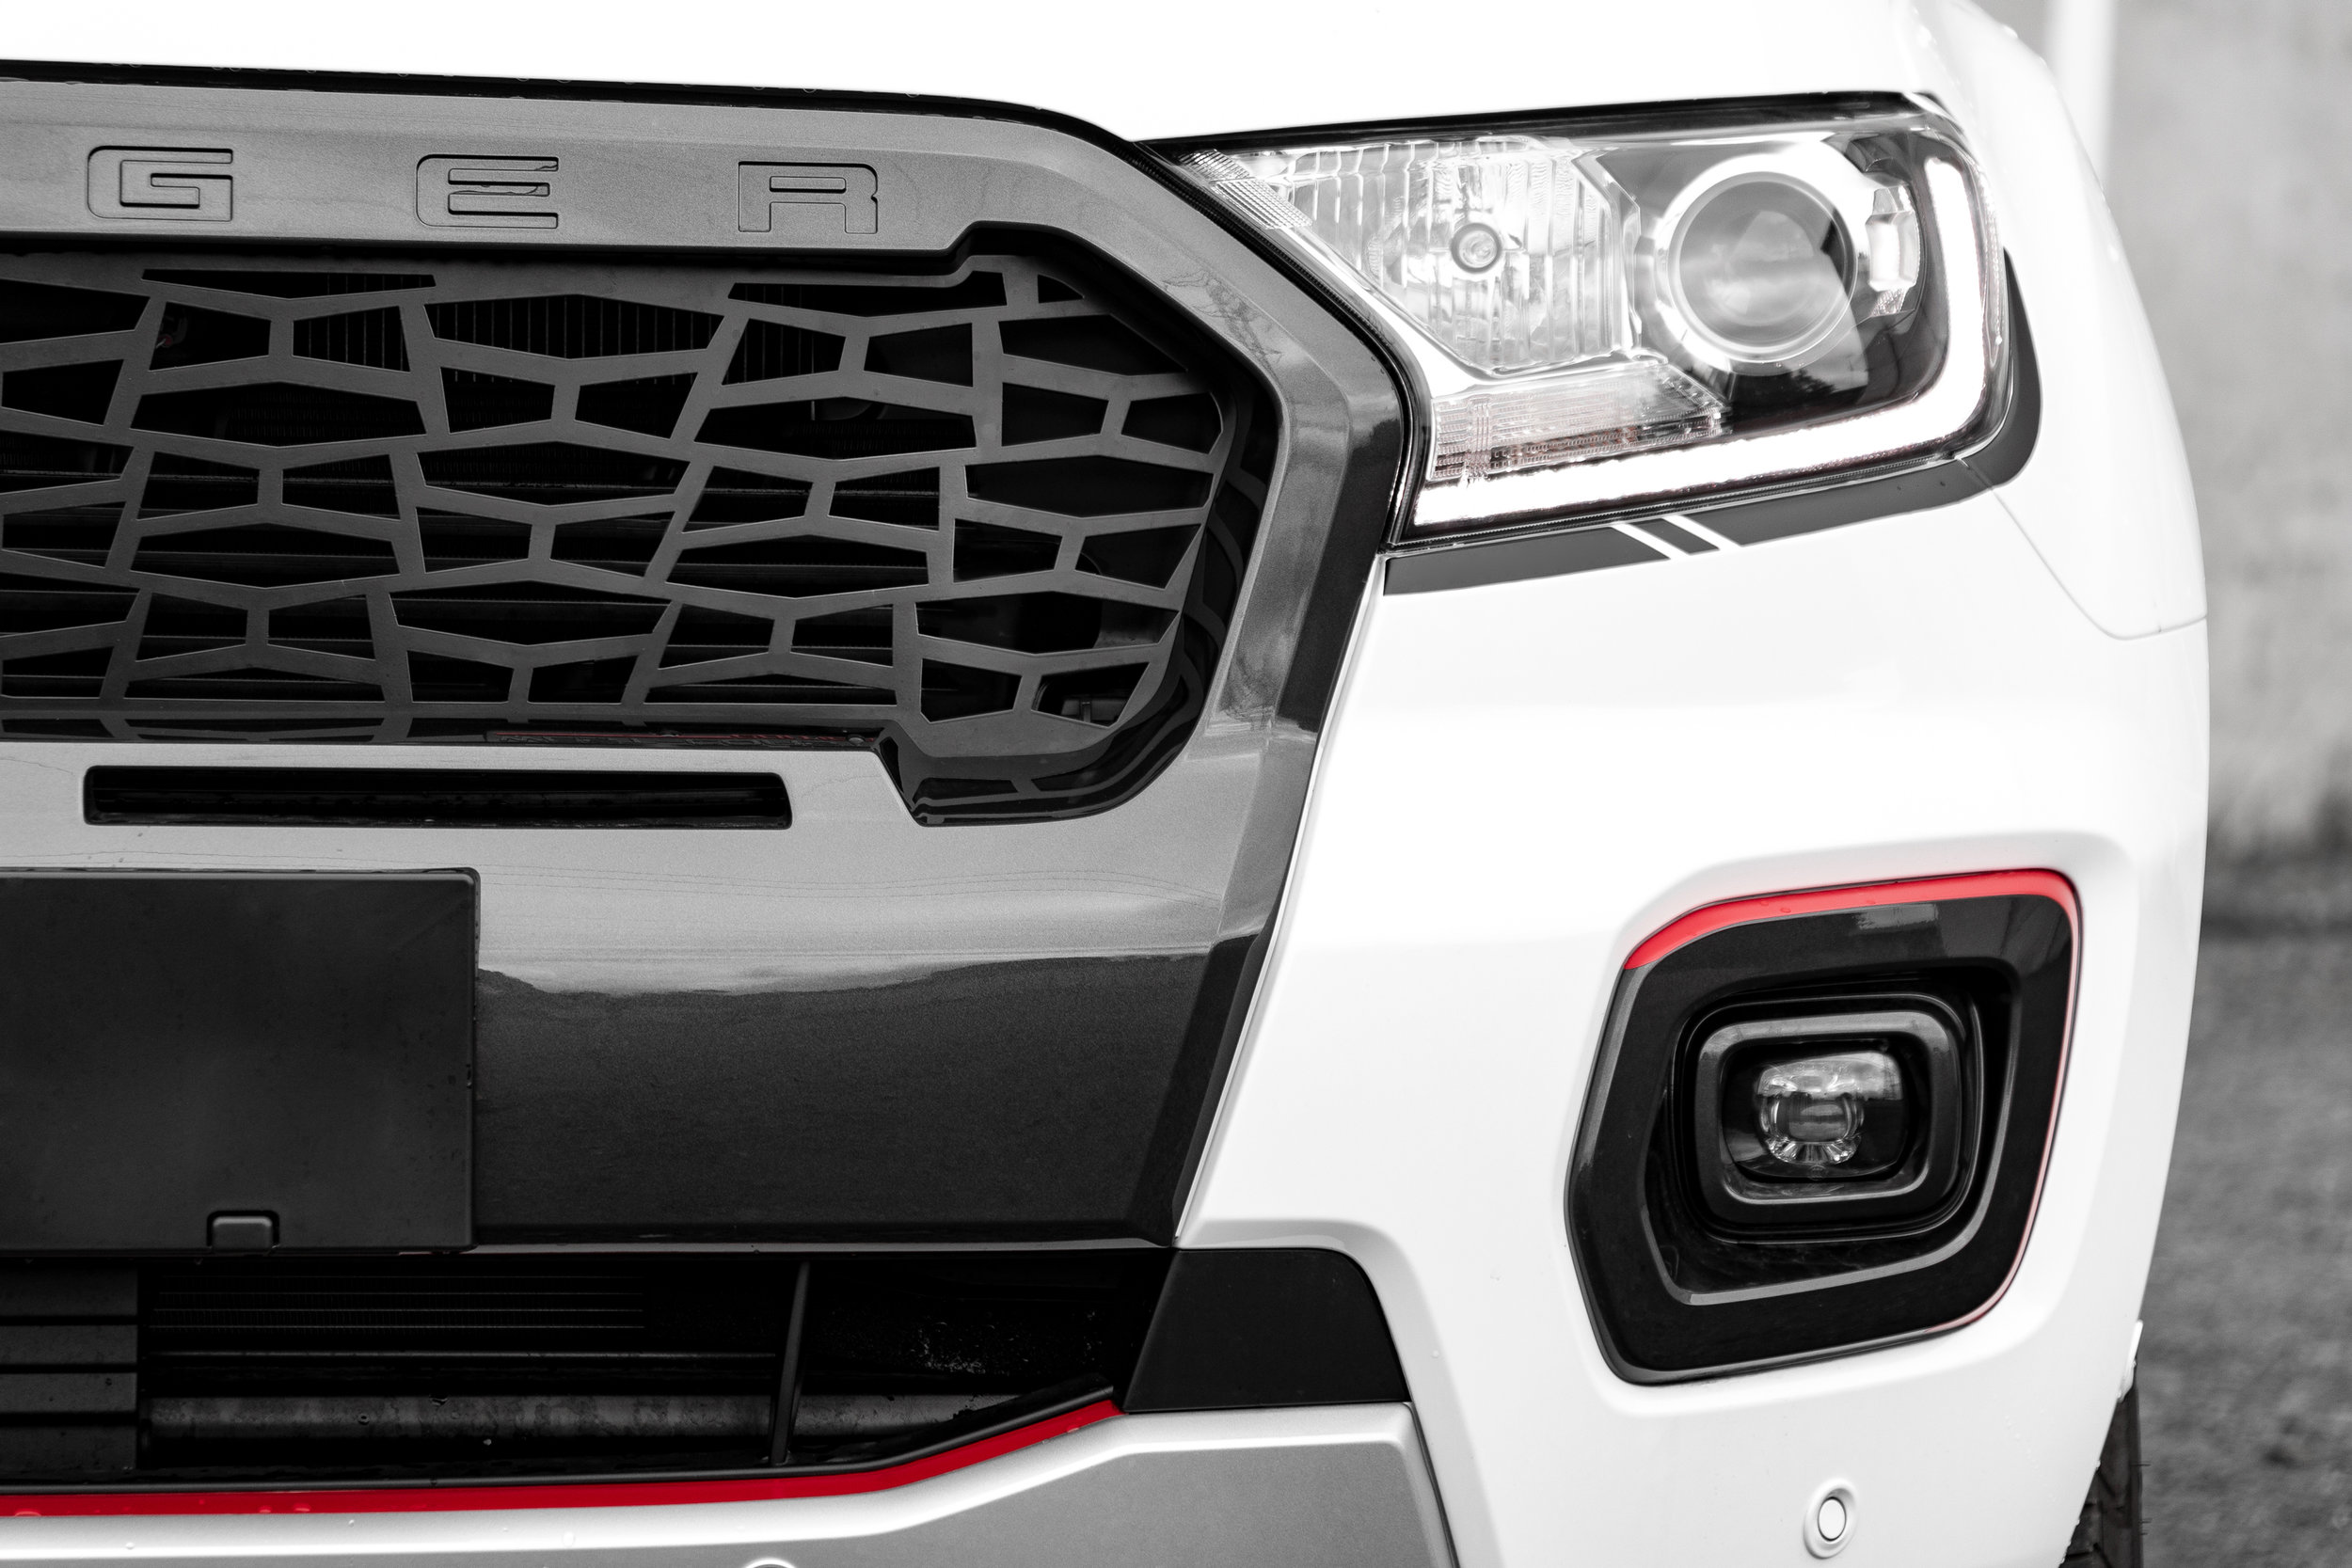 Grille mesh without bezel or lights